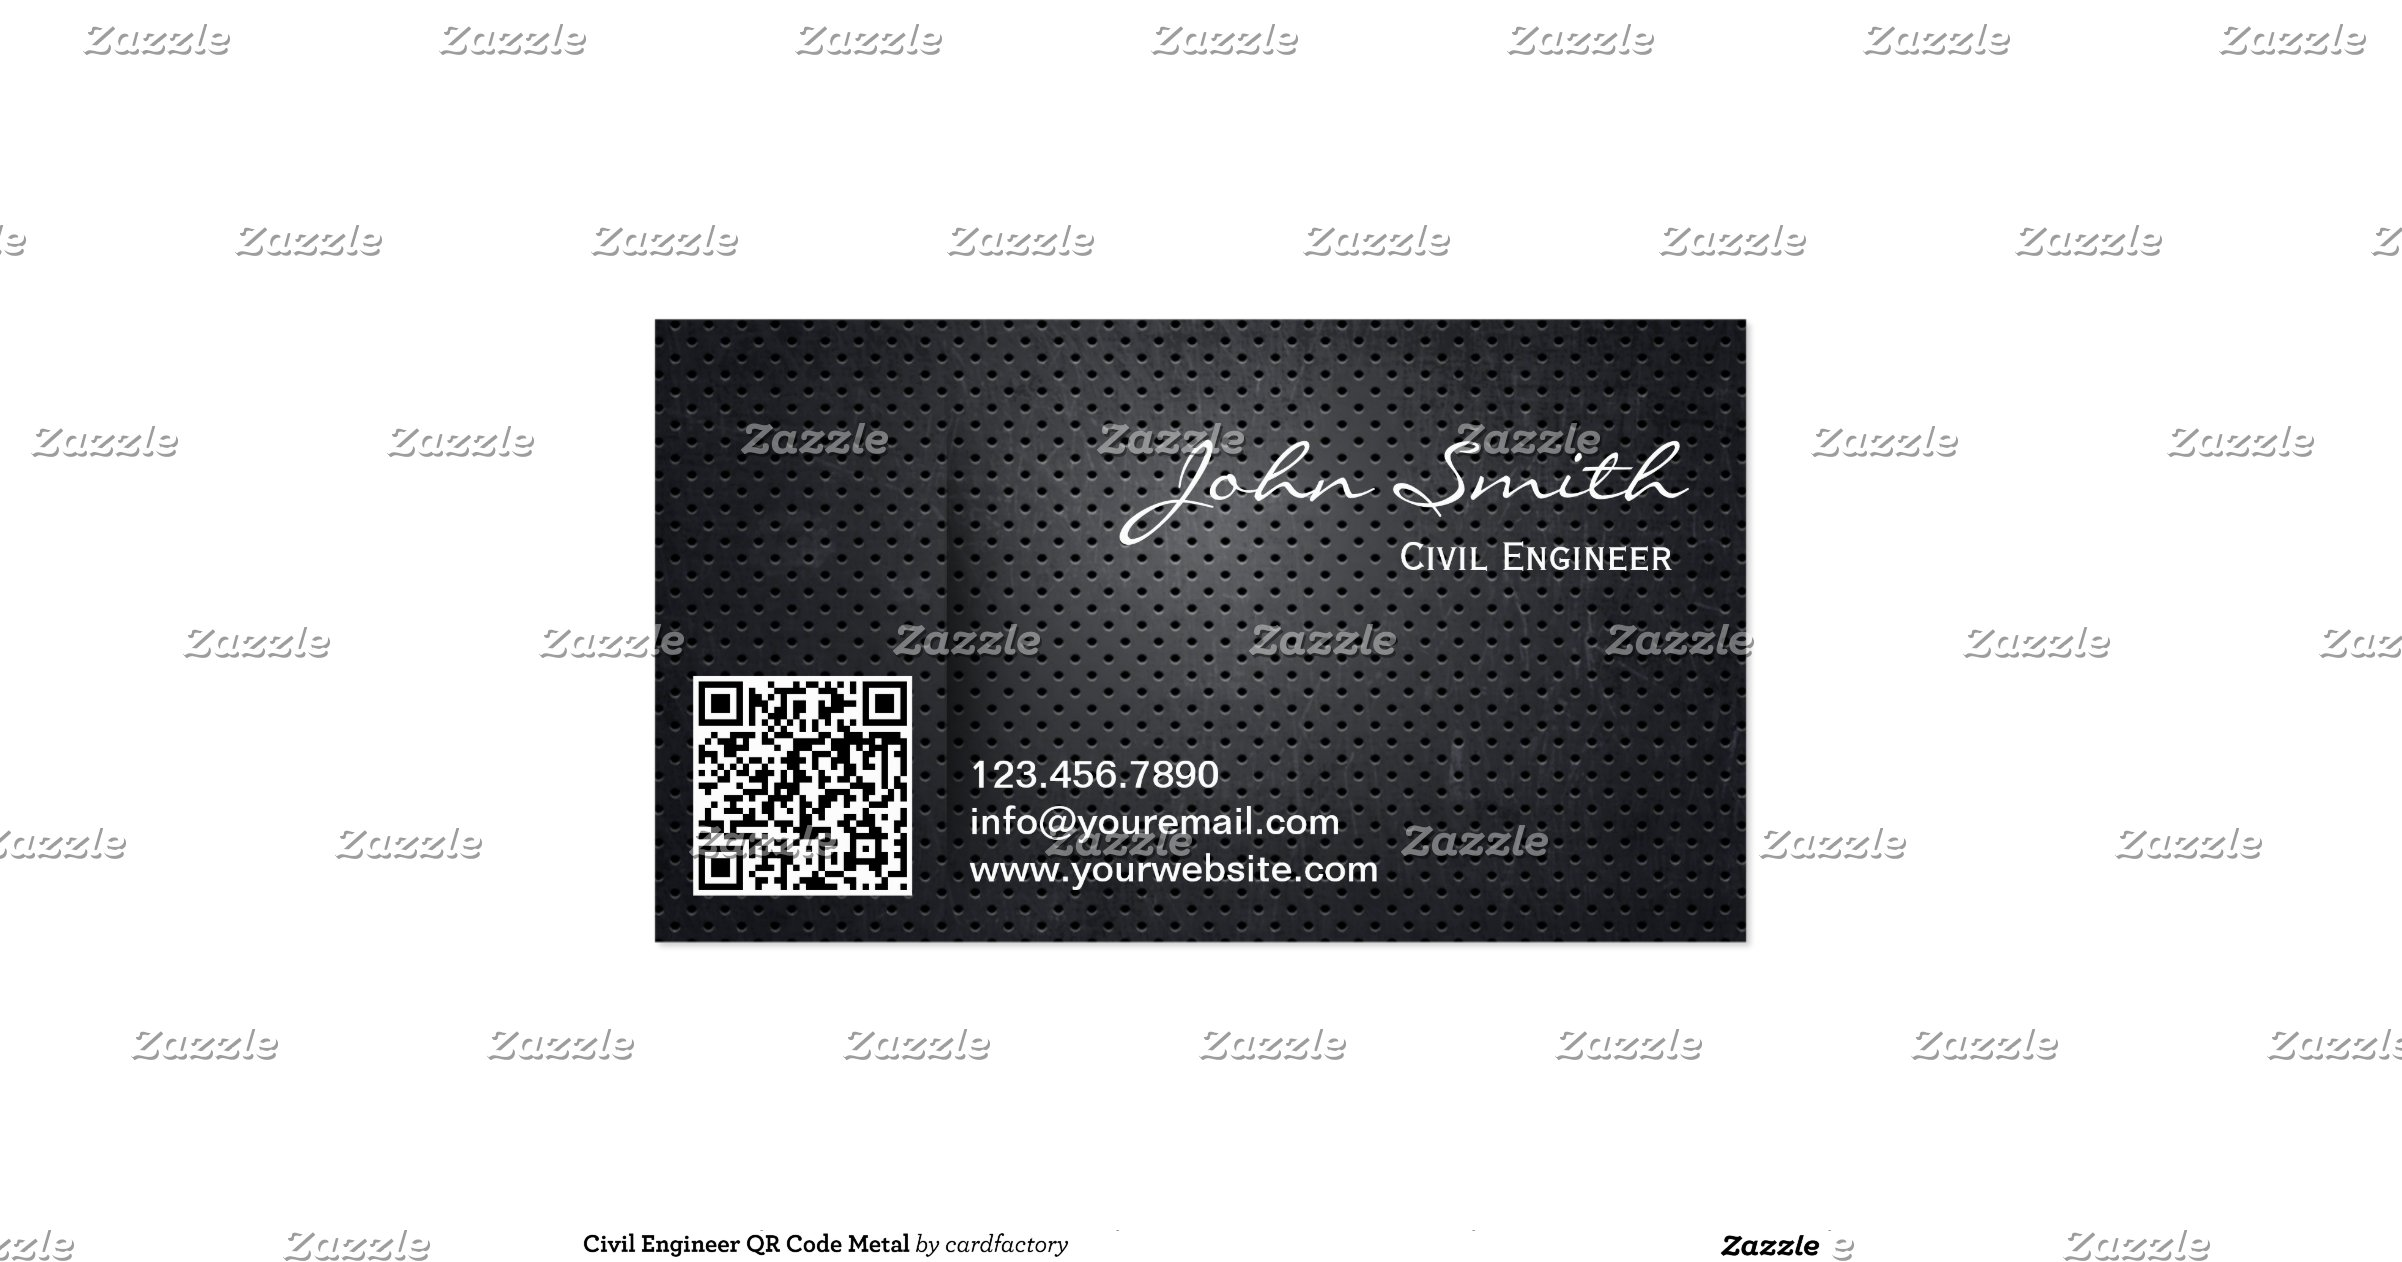 metal qr code civil engineer business card r3c6dbe4d15c54ce2a06c85dc3eae85d2 i579t 8byvr 1200. Black Bedroom Furniture Sets. Home Design Ideas